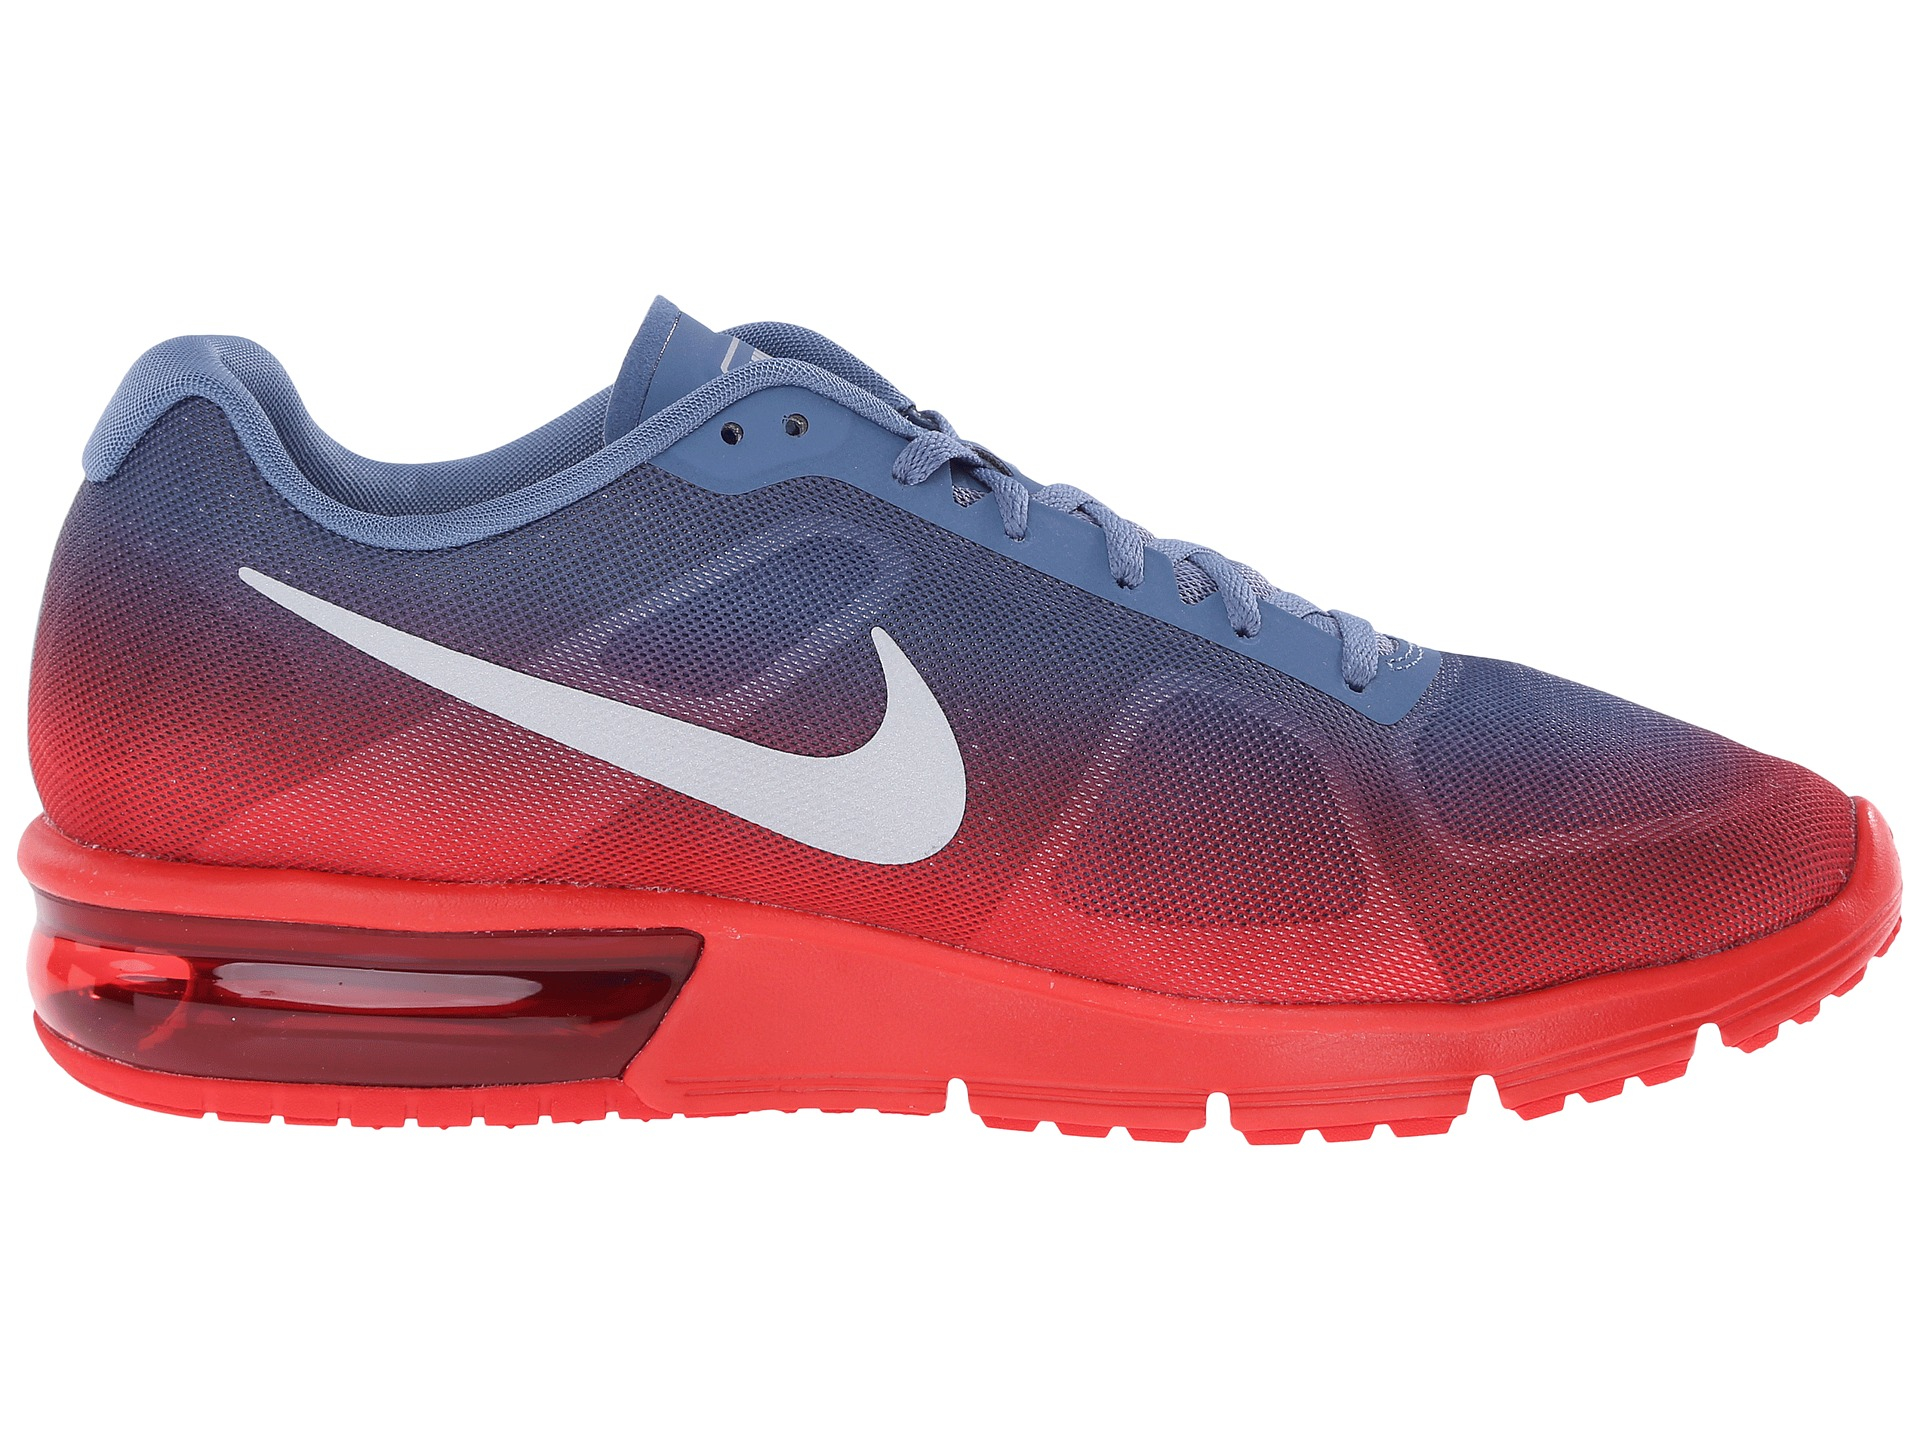 a57150919a Nike Air Max Sequent Low-Top Sneakers in Red for Men - Lyst